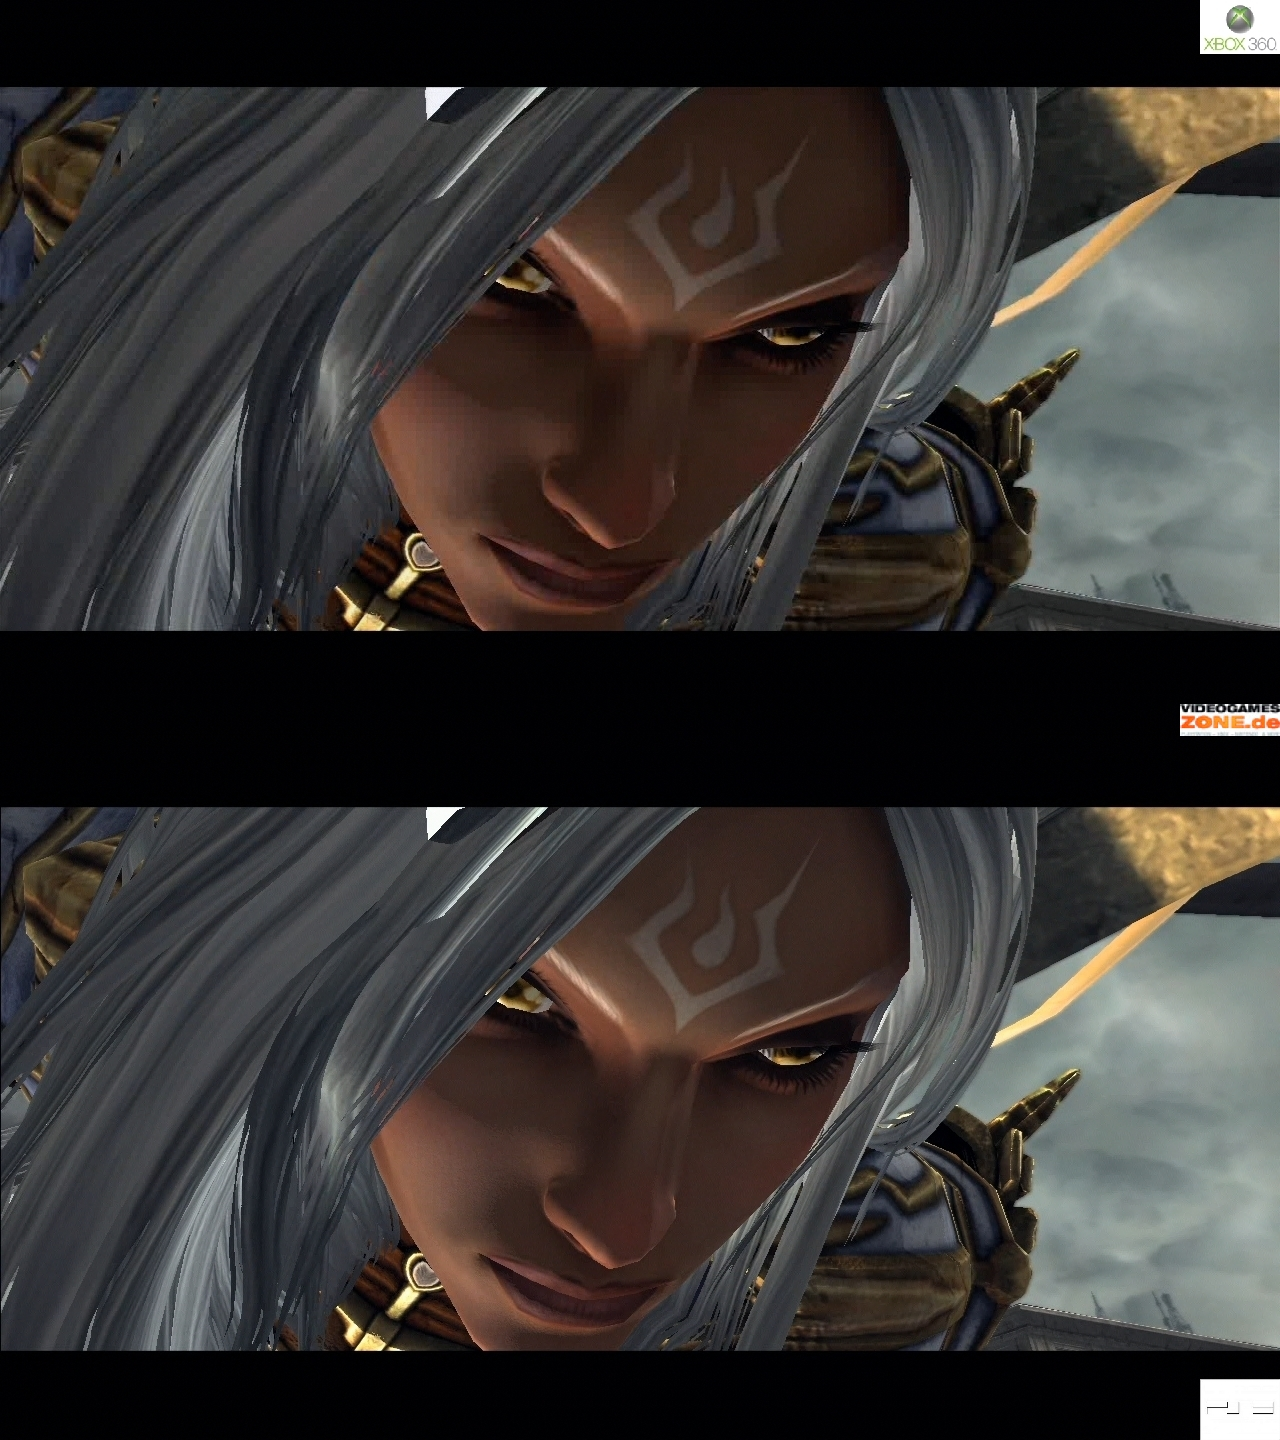 Darksiders Graphic Comparison  Xbox 360 vs  PS3Xbox 360 Vs Ps3 Graphics